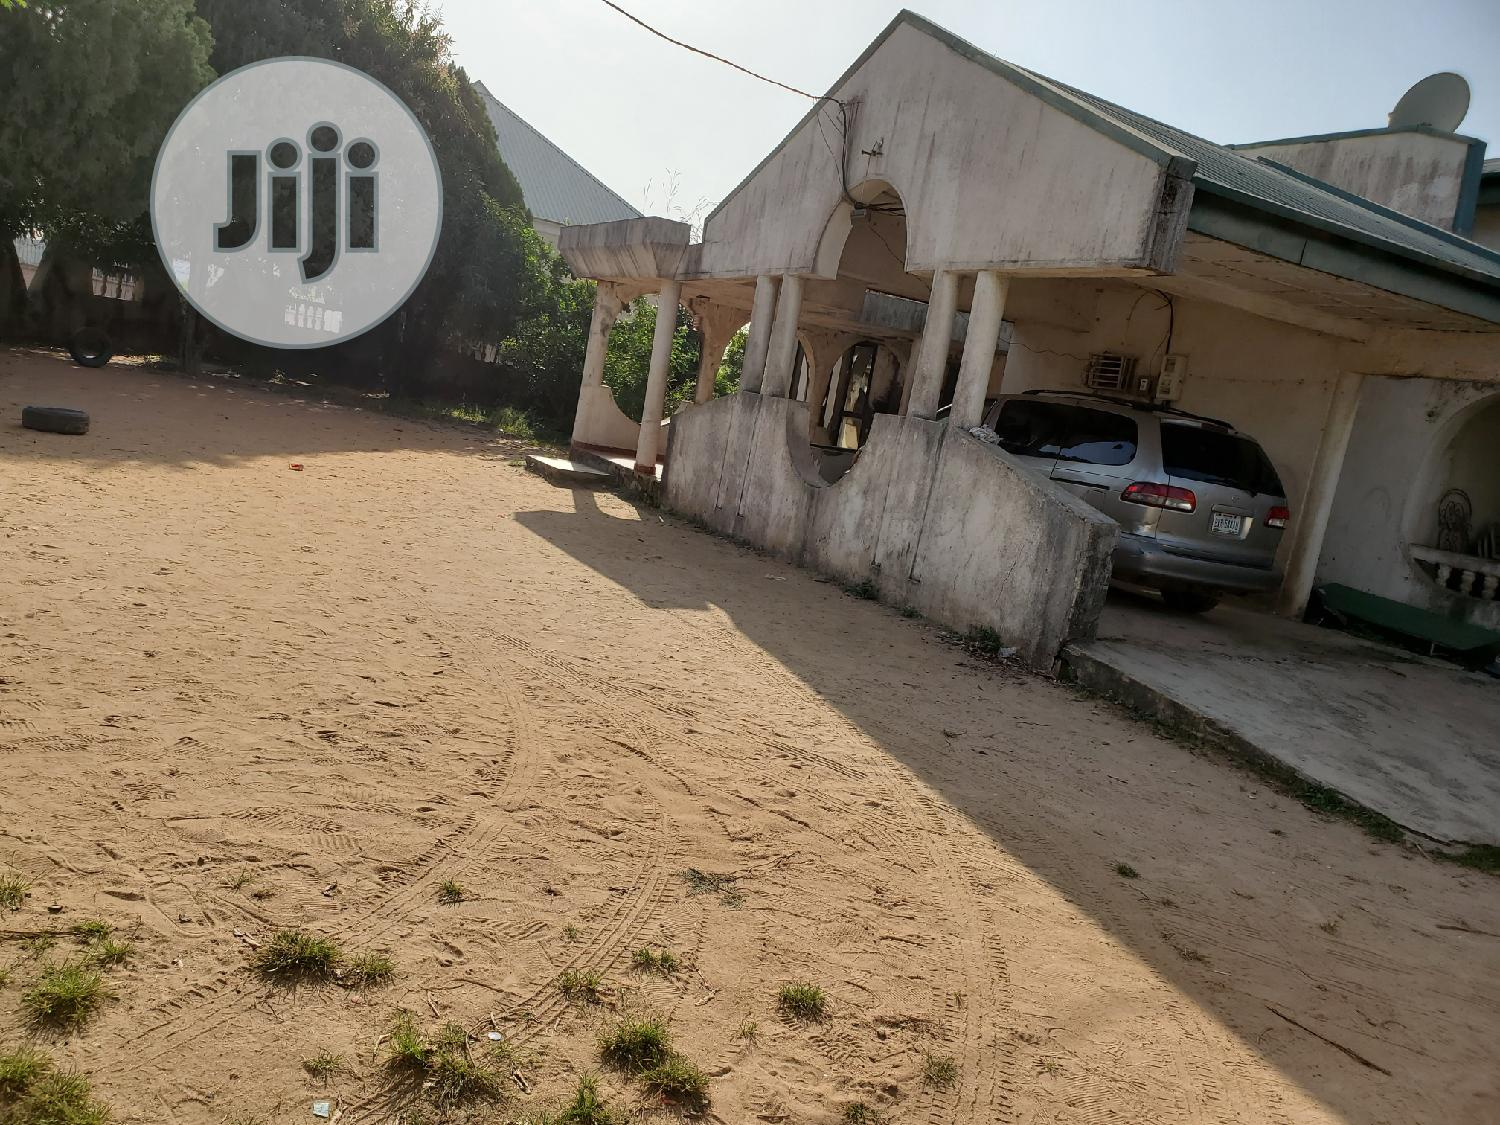 5 Bedroom Bungalow & Guest Charlet On 1800sqm In Main Kubwa | Houses & Apartments For Sale for sale in Kubwa, Abuja (FCT) State, Nigeria